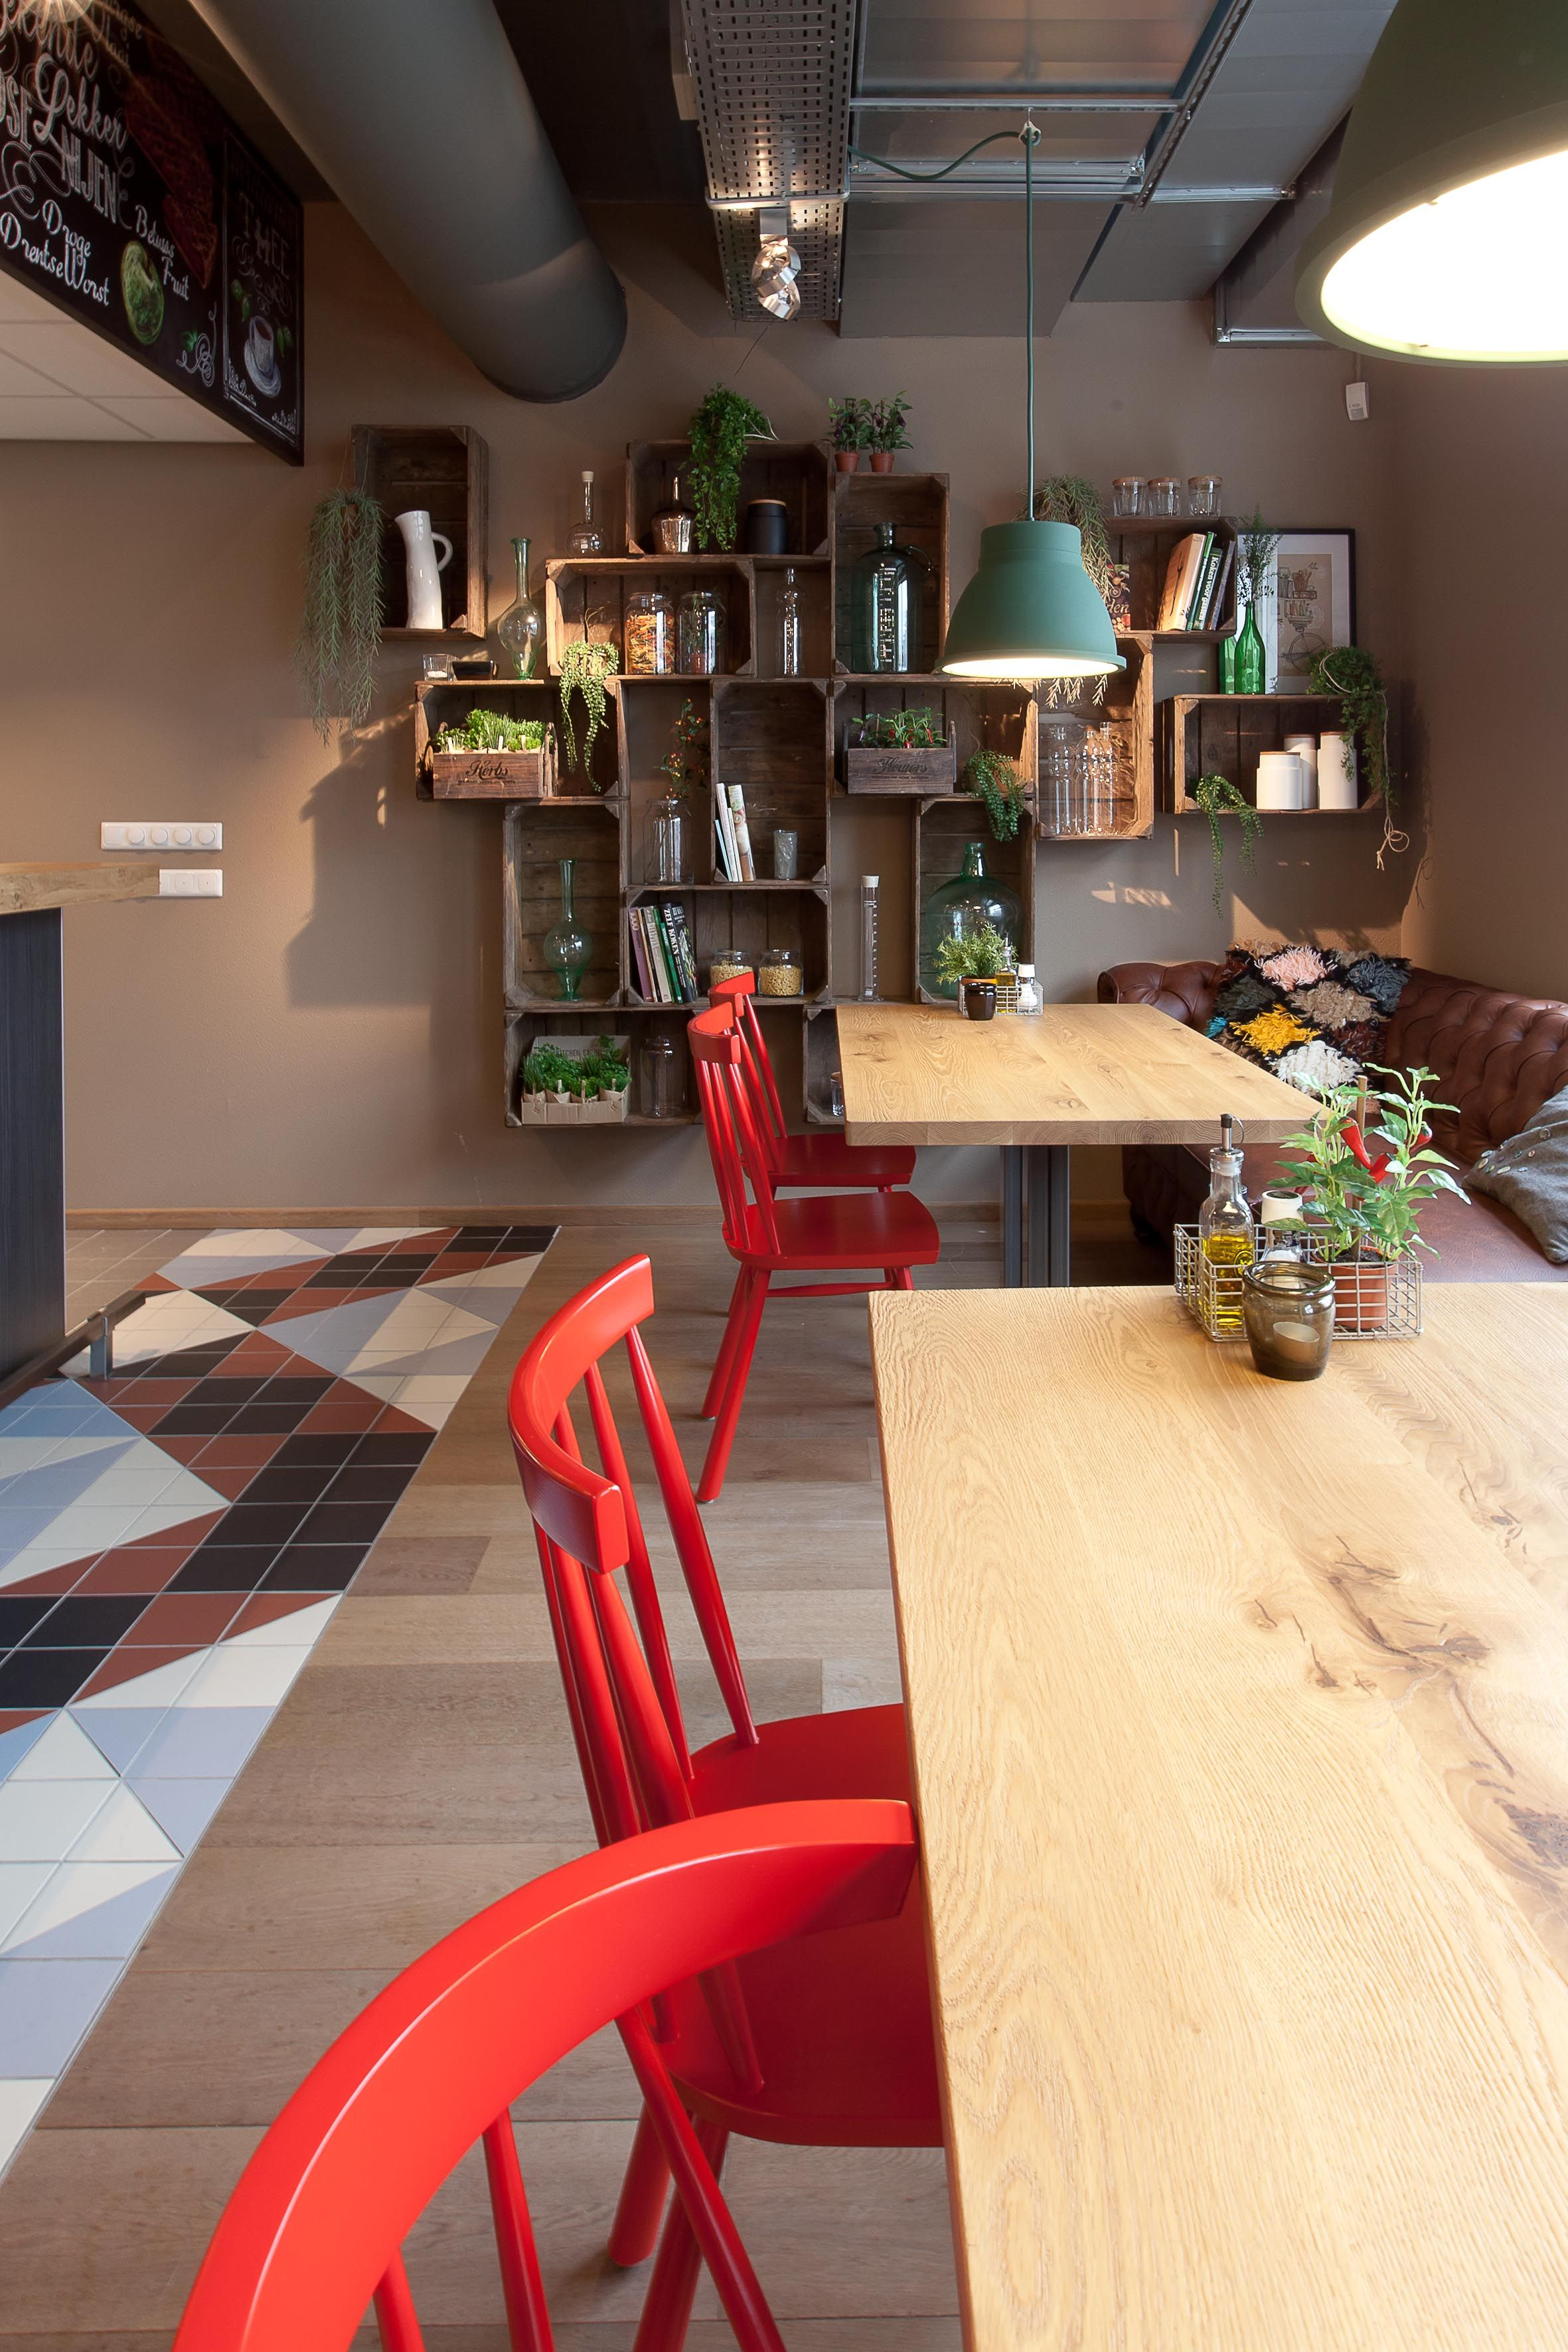 Driessen Interieur Helmond Emn Interieur Architectuur Office Restaurant Driessen Hrm